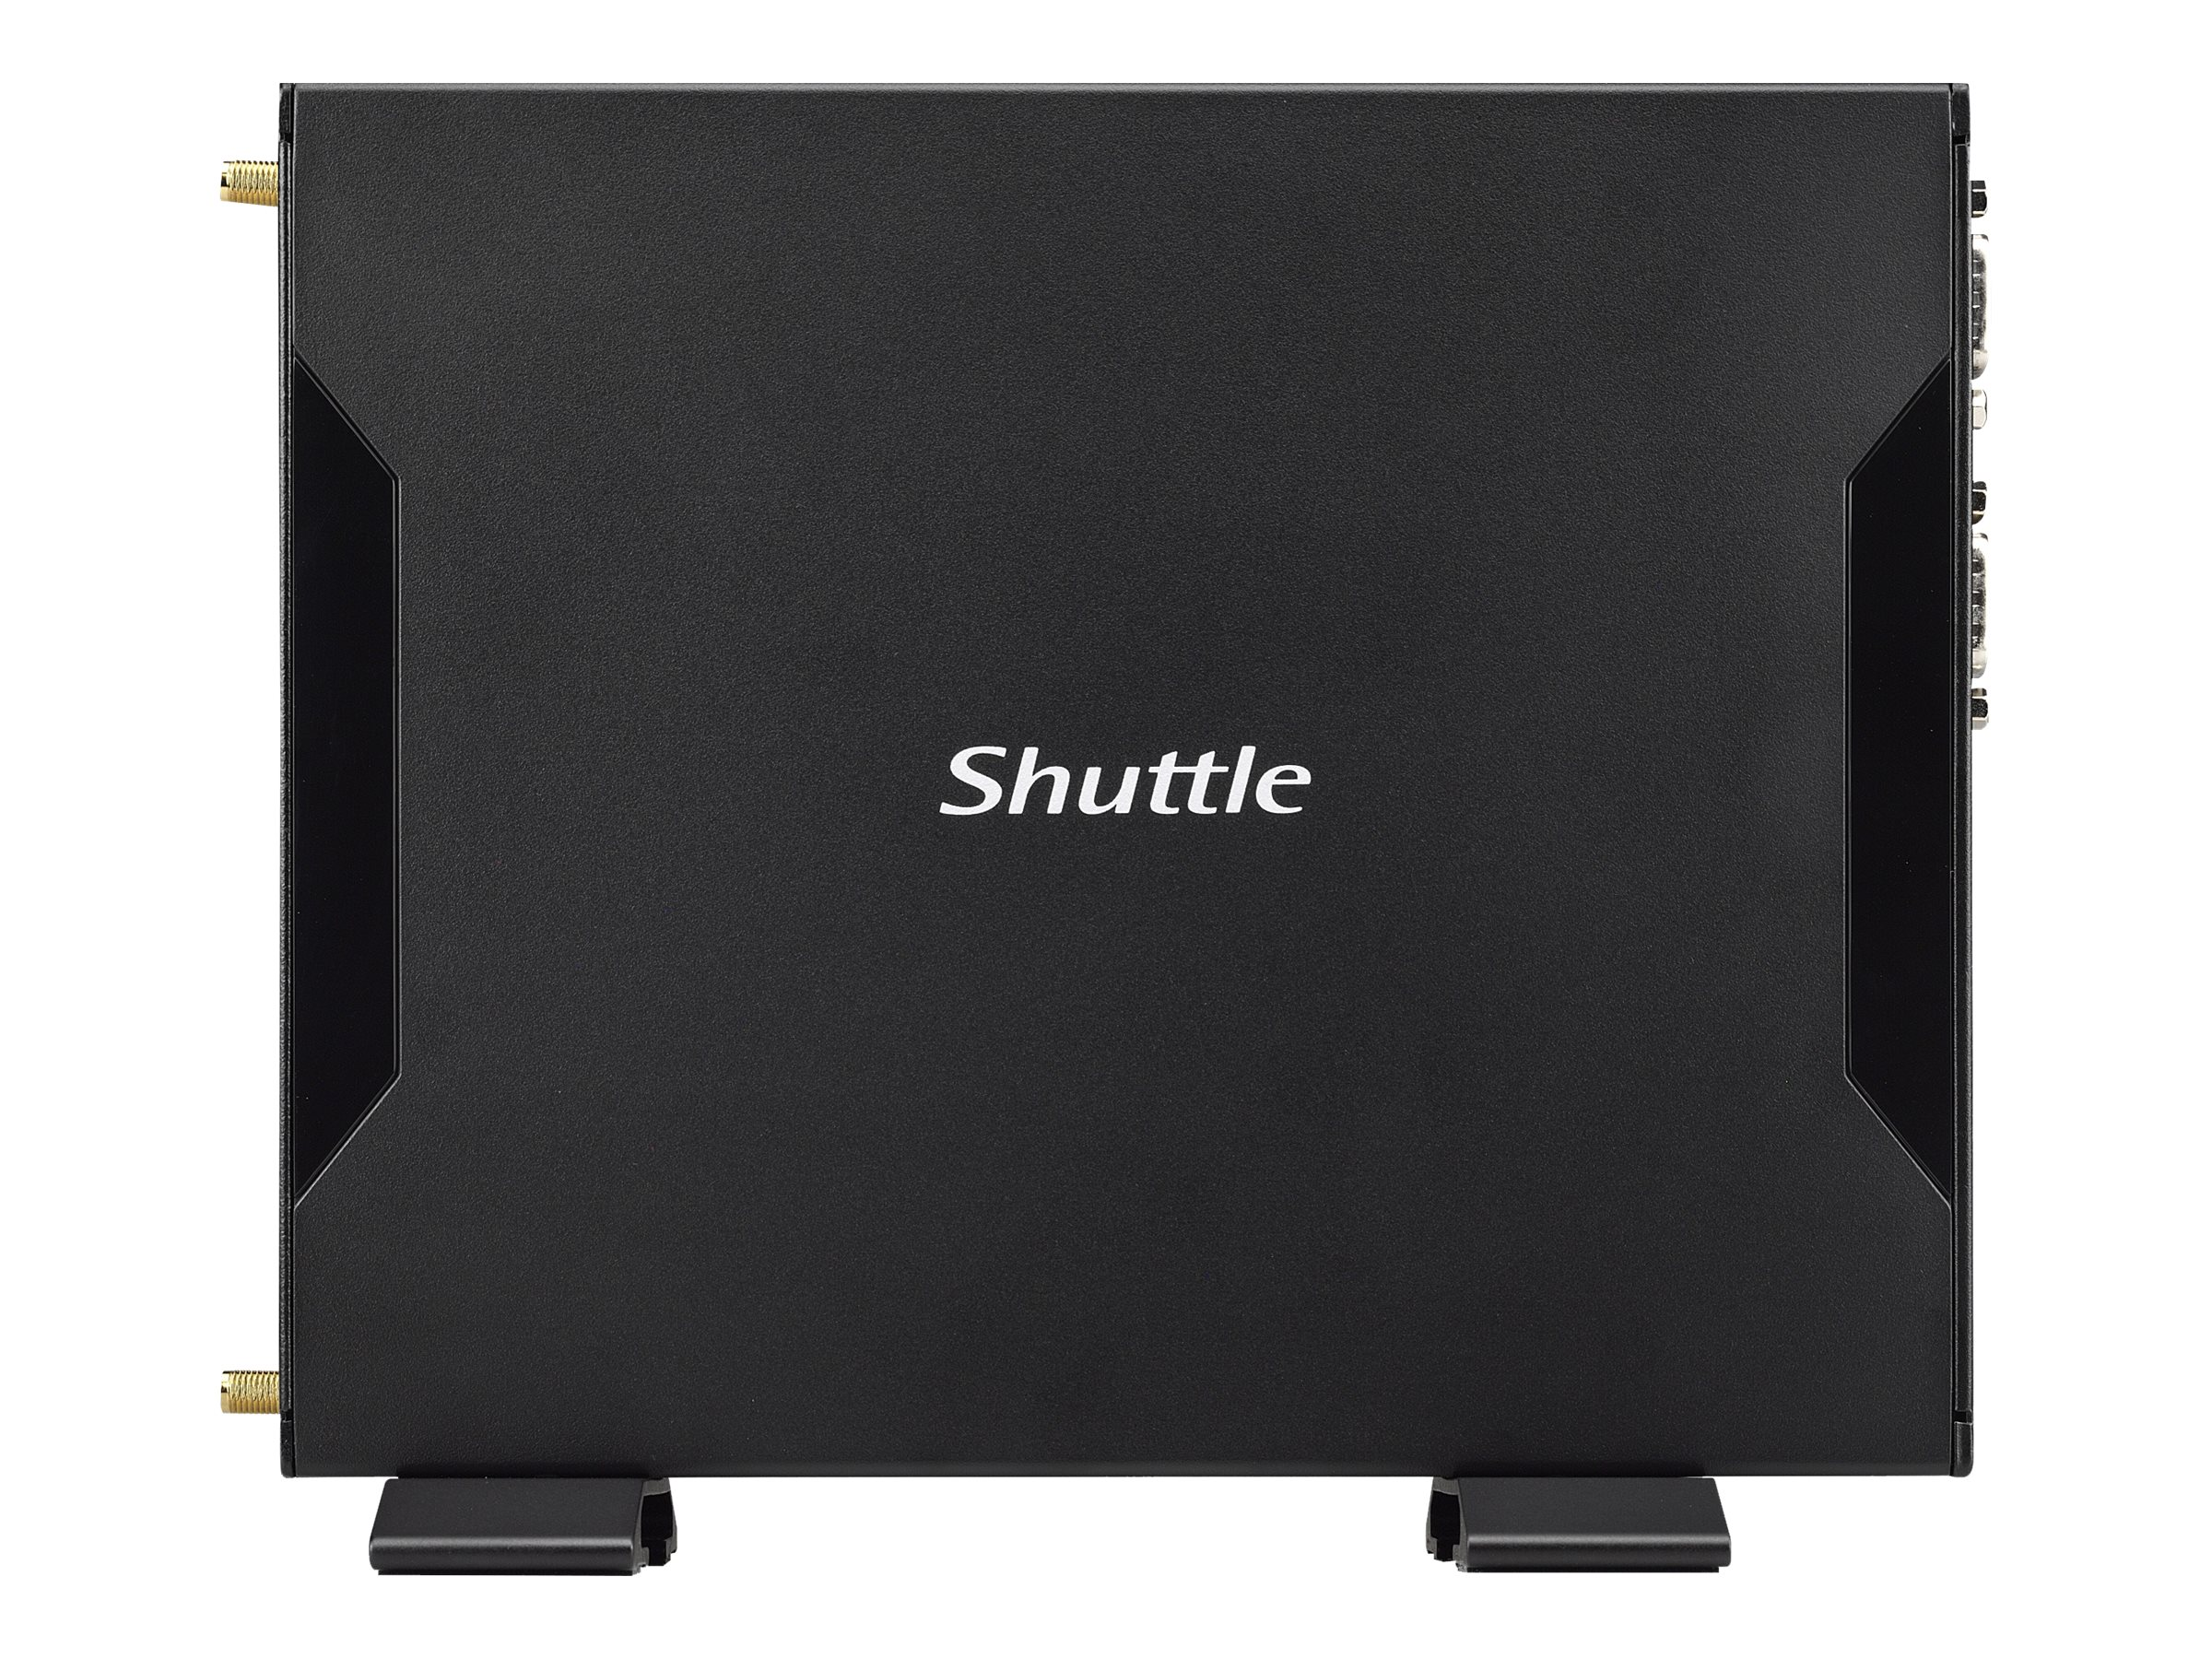 Shuttle Computer Group DS67U7 Image 5